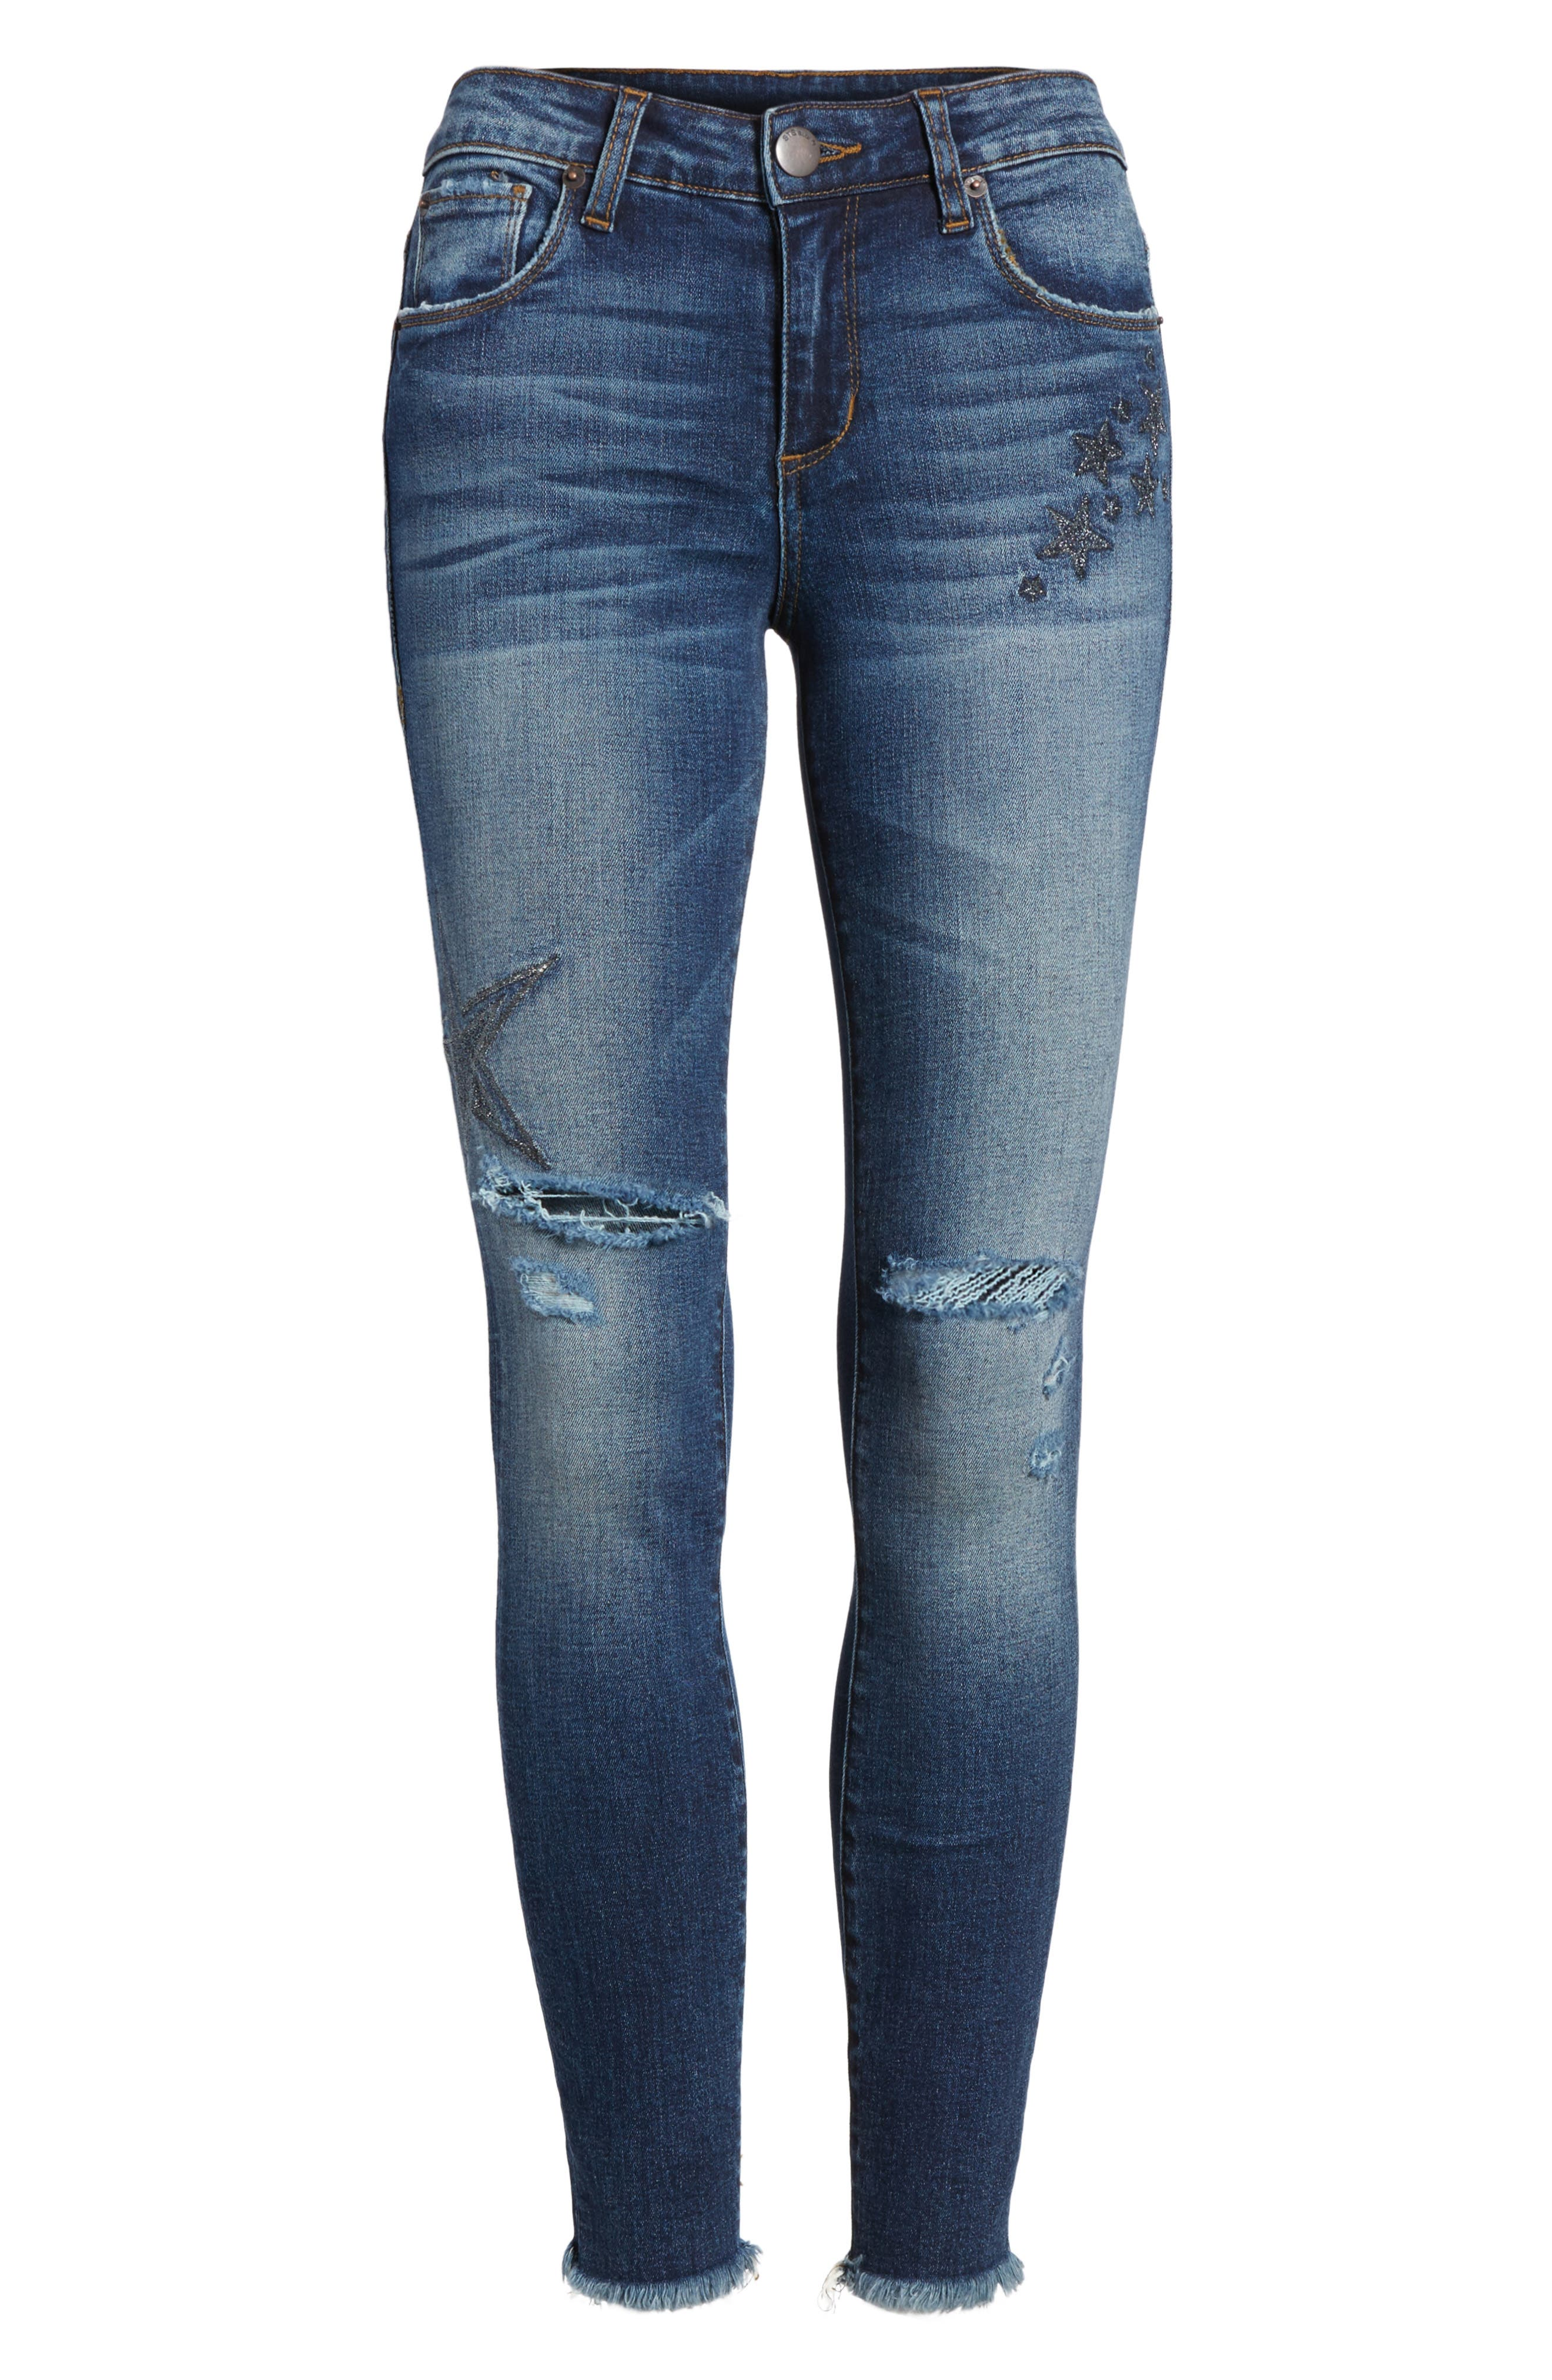 Star Embroiderd Skinny Ankle Jeans,                             Alternate thumbnail 6, color,                             Big Rock